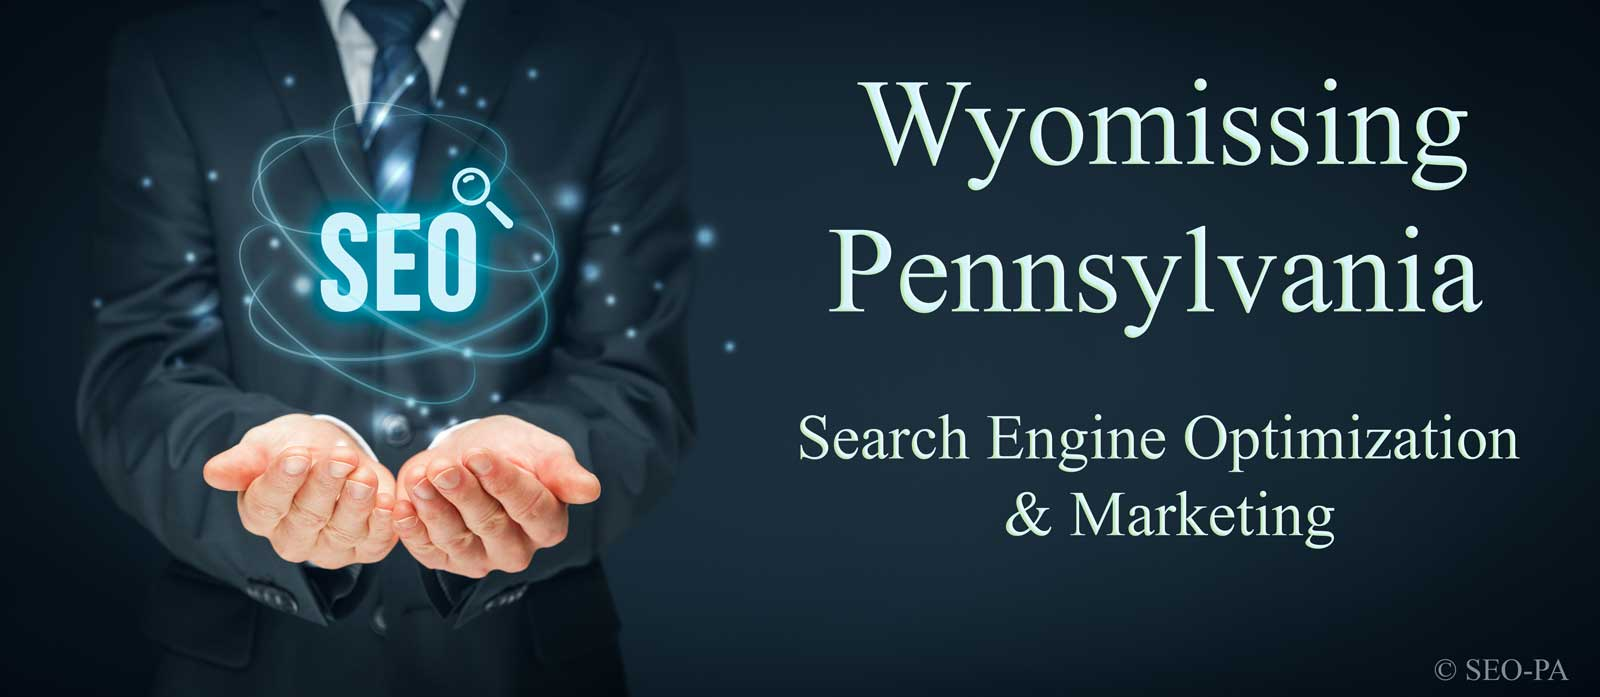 Wyomissing, PA Search Engine Optimization & SEO Expert Services